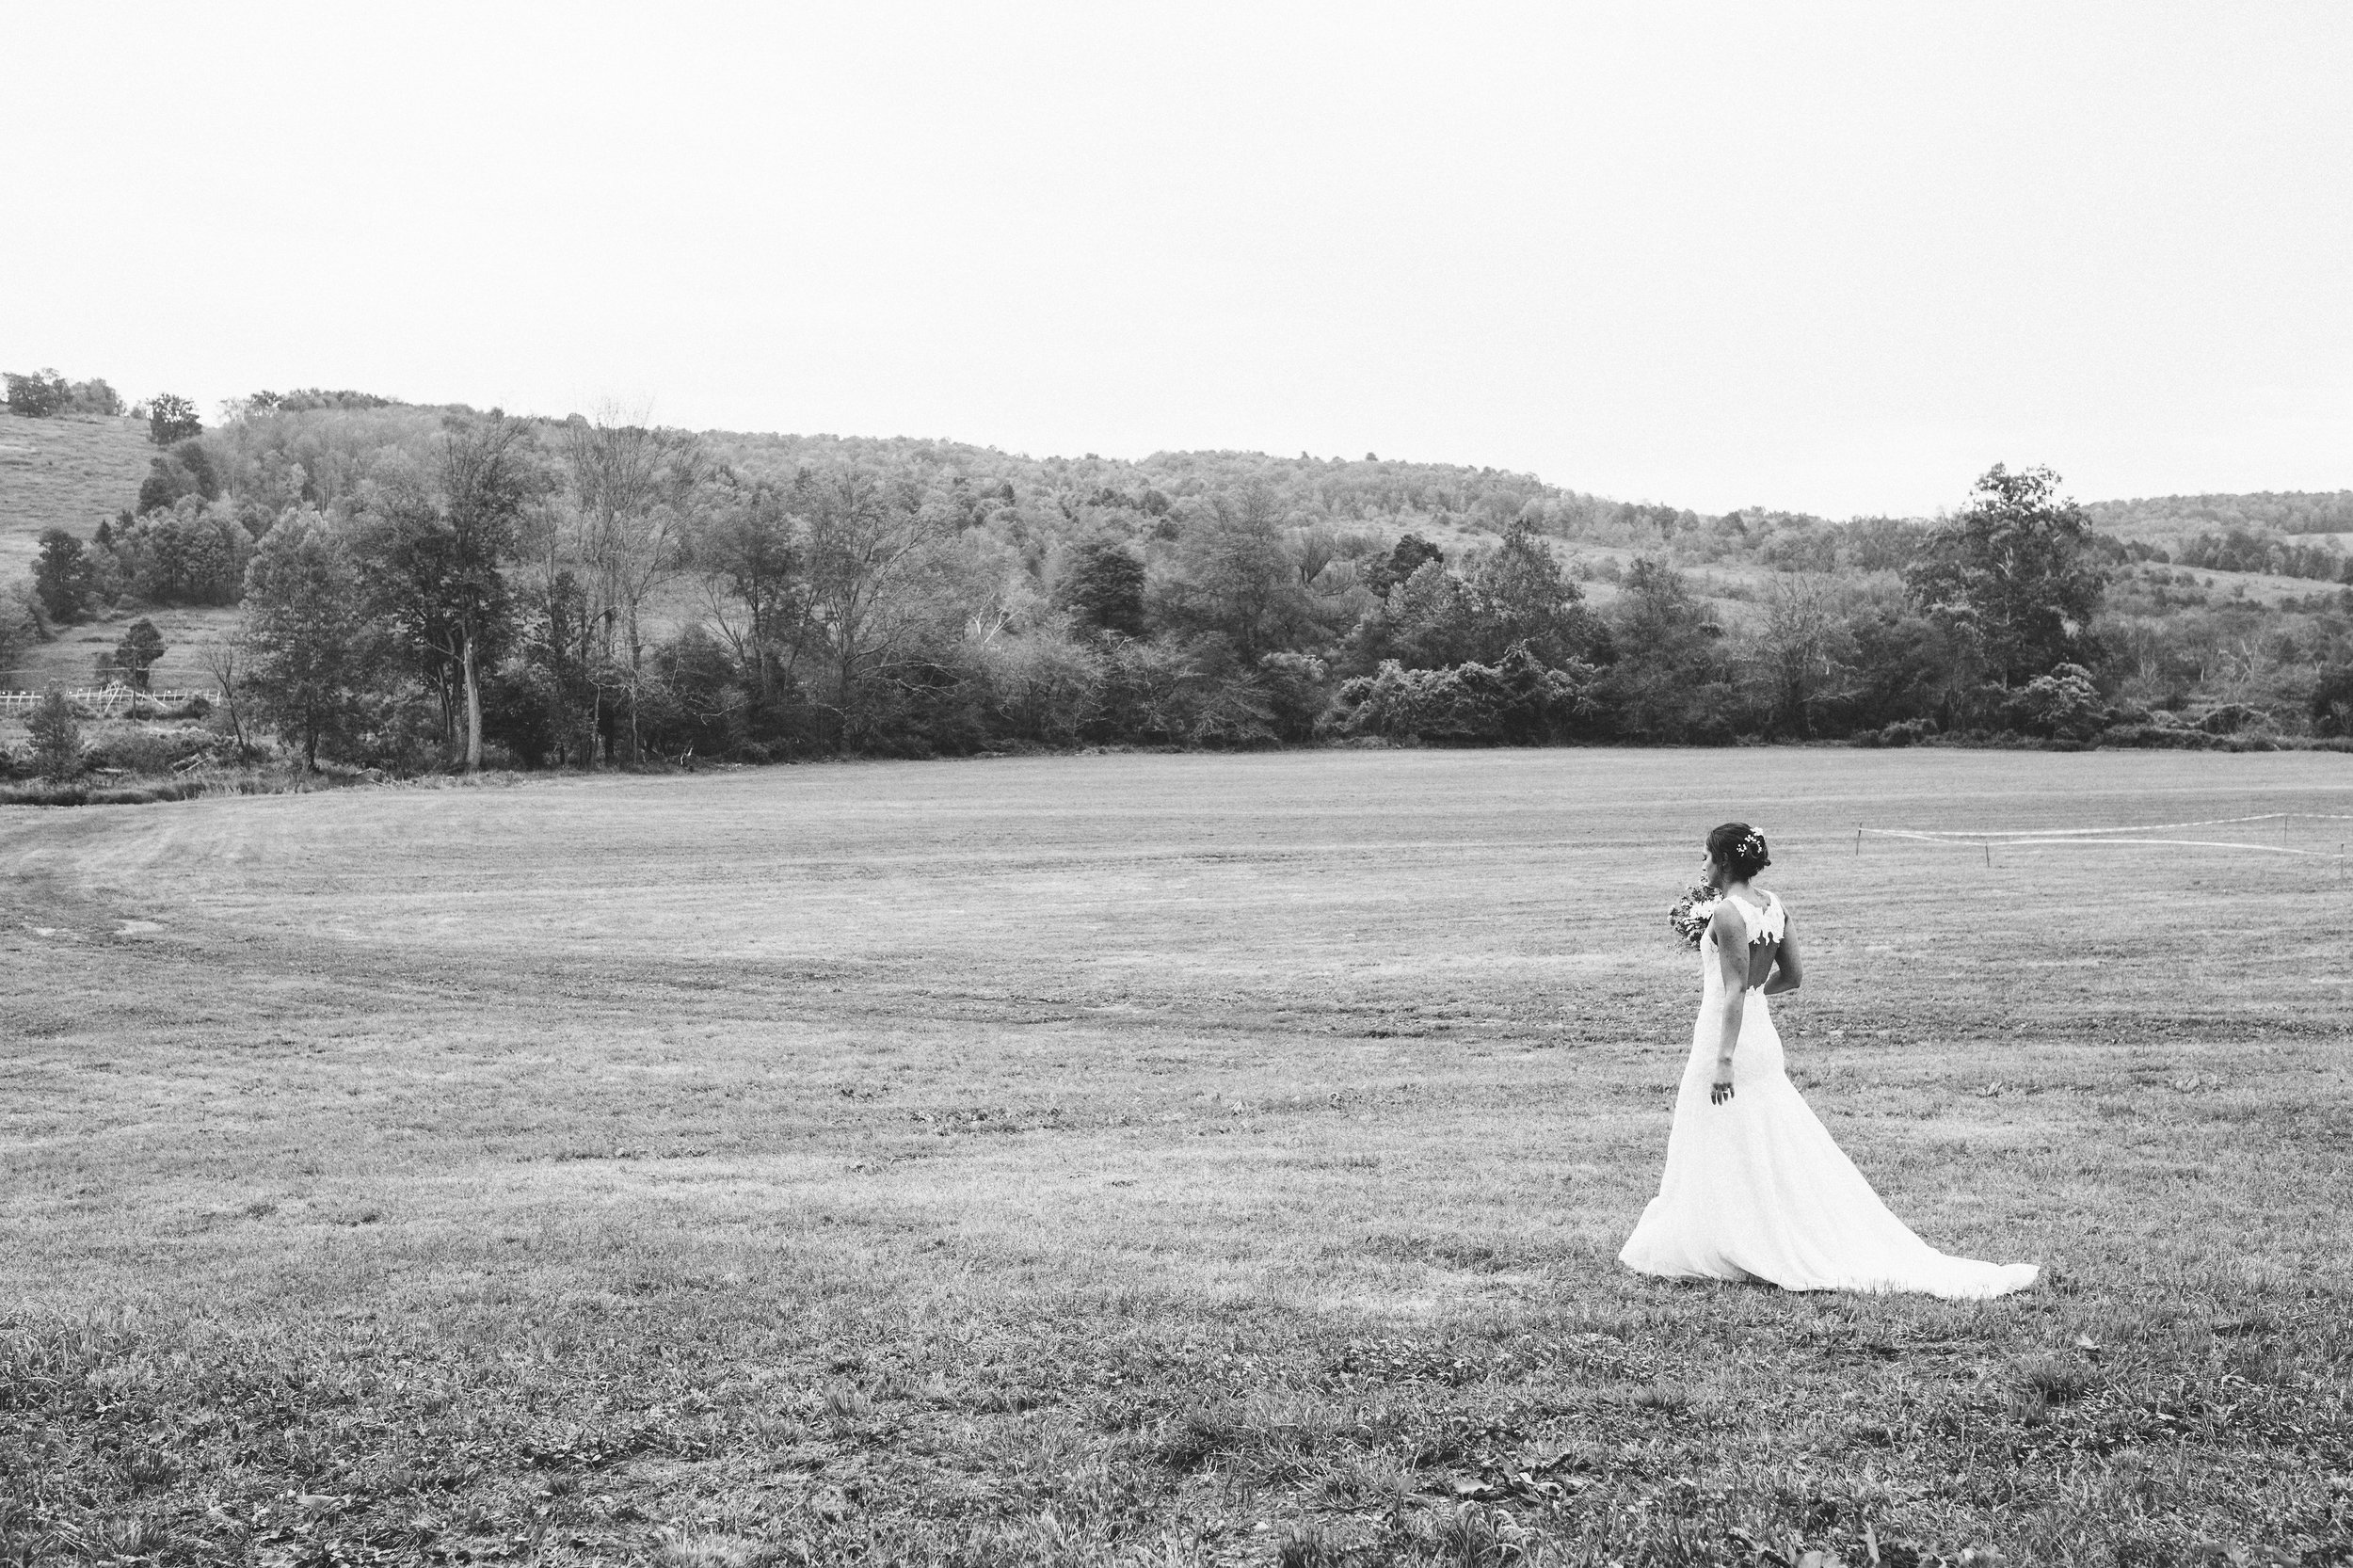 brittany-eric-upstate-diy-farm-wedding-couple-of-dudes-lawrence-braun-Hi-Res-0038.jpg